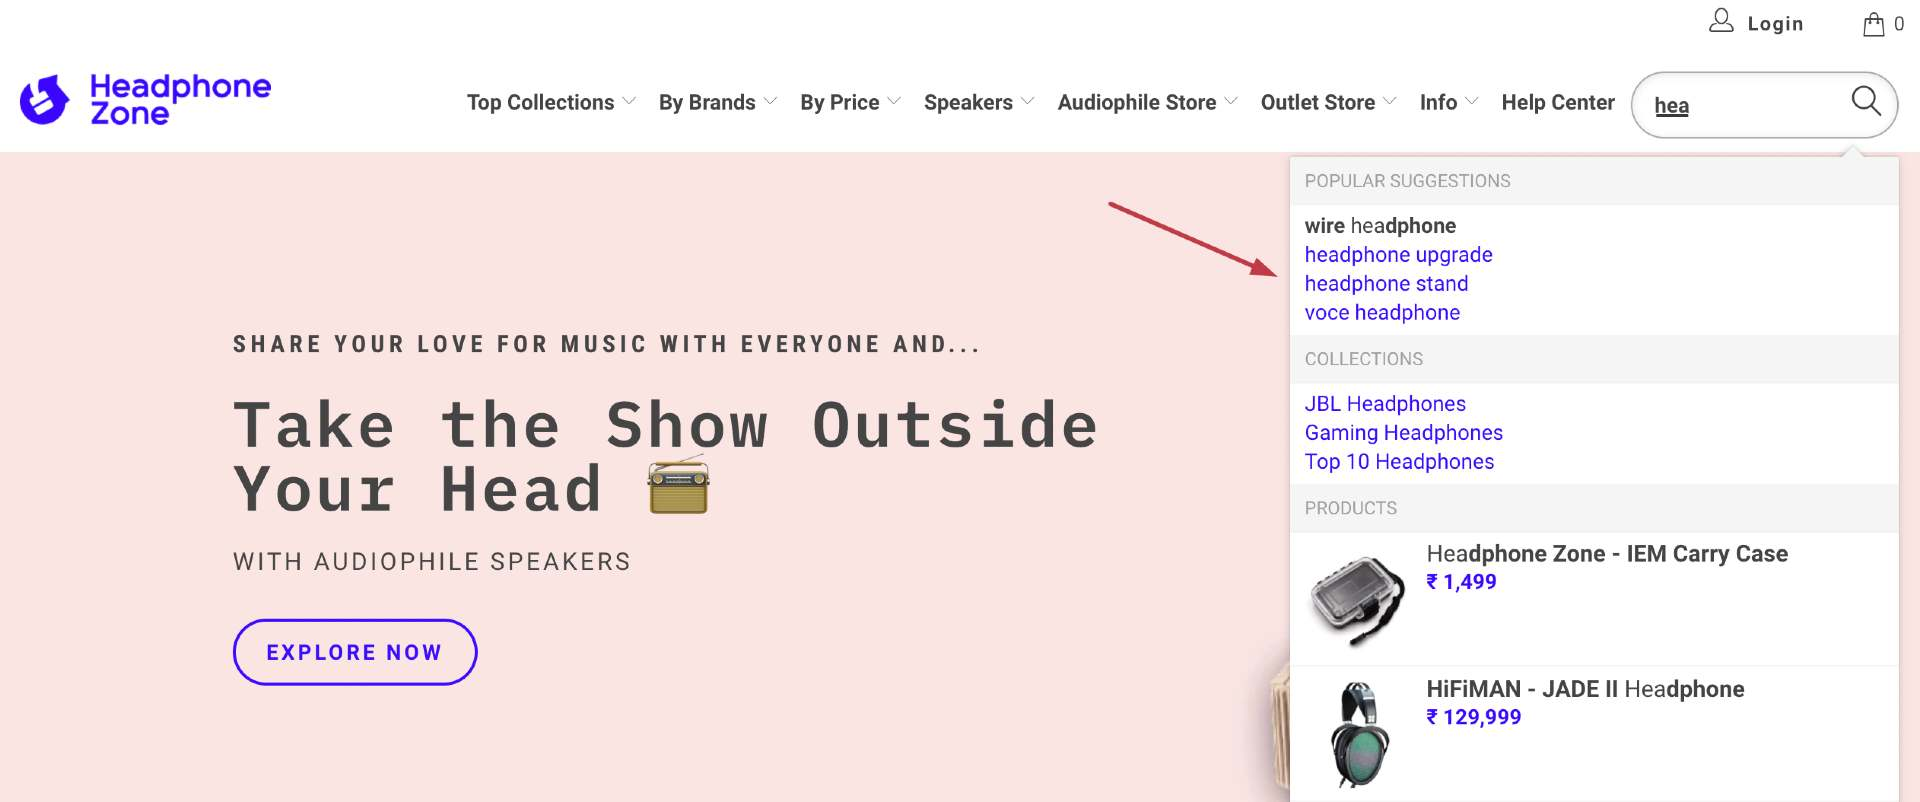 headphone zone search box tips boost commerce no search results